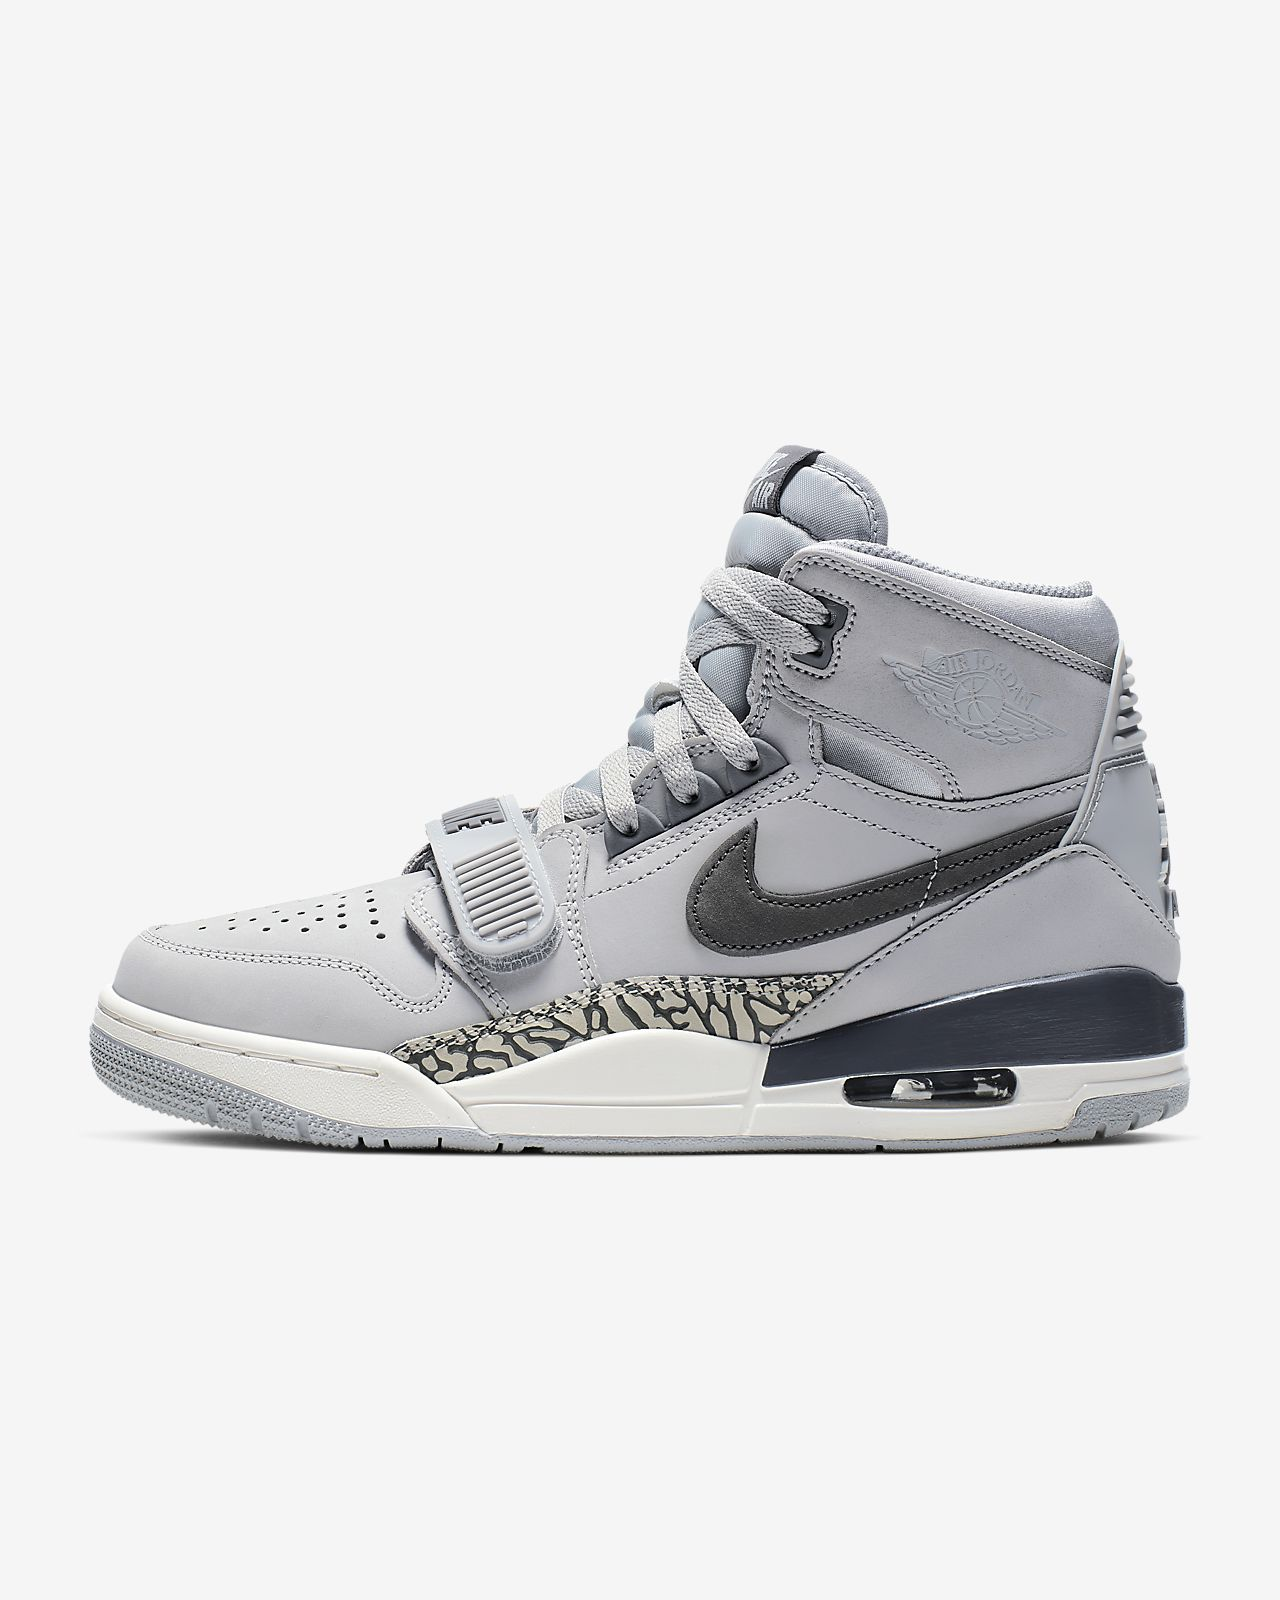 97274571a59 Air Jordan Legacy 312 Men's Shoe